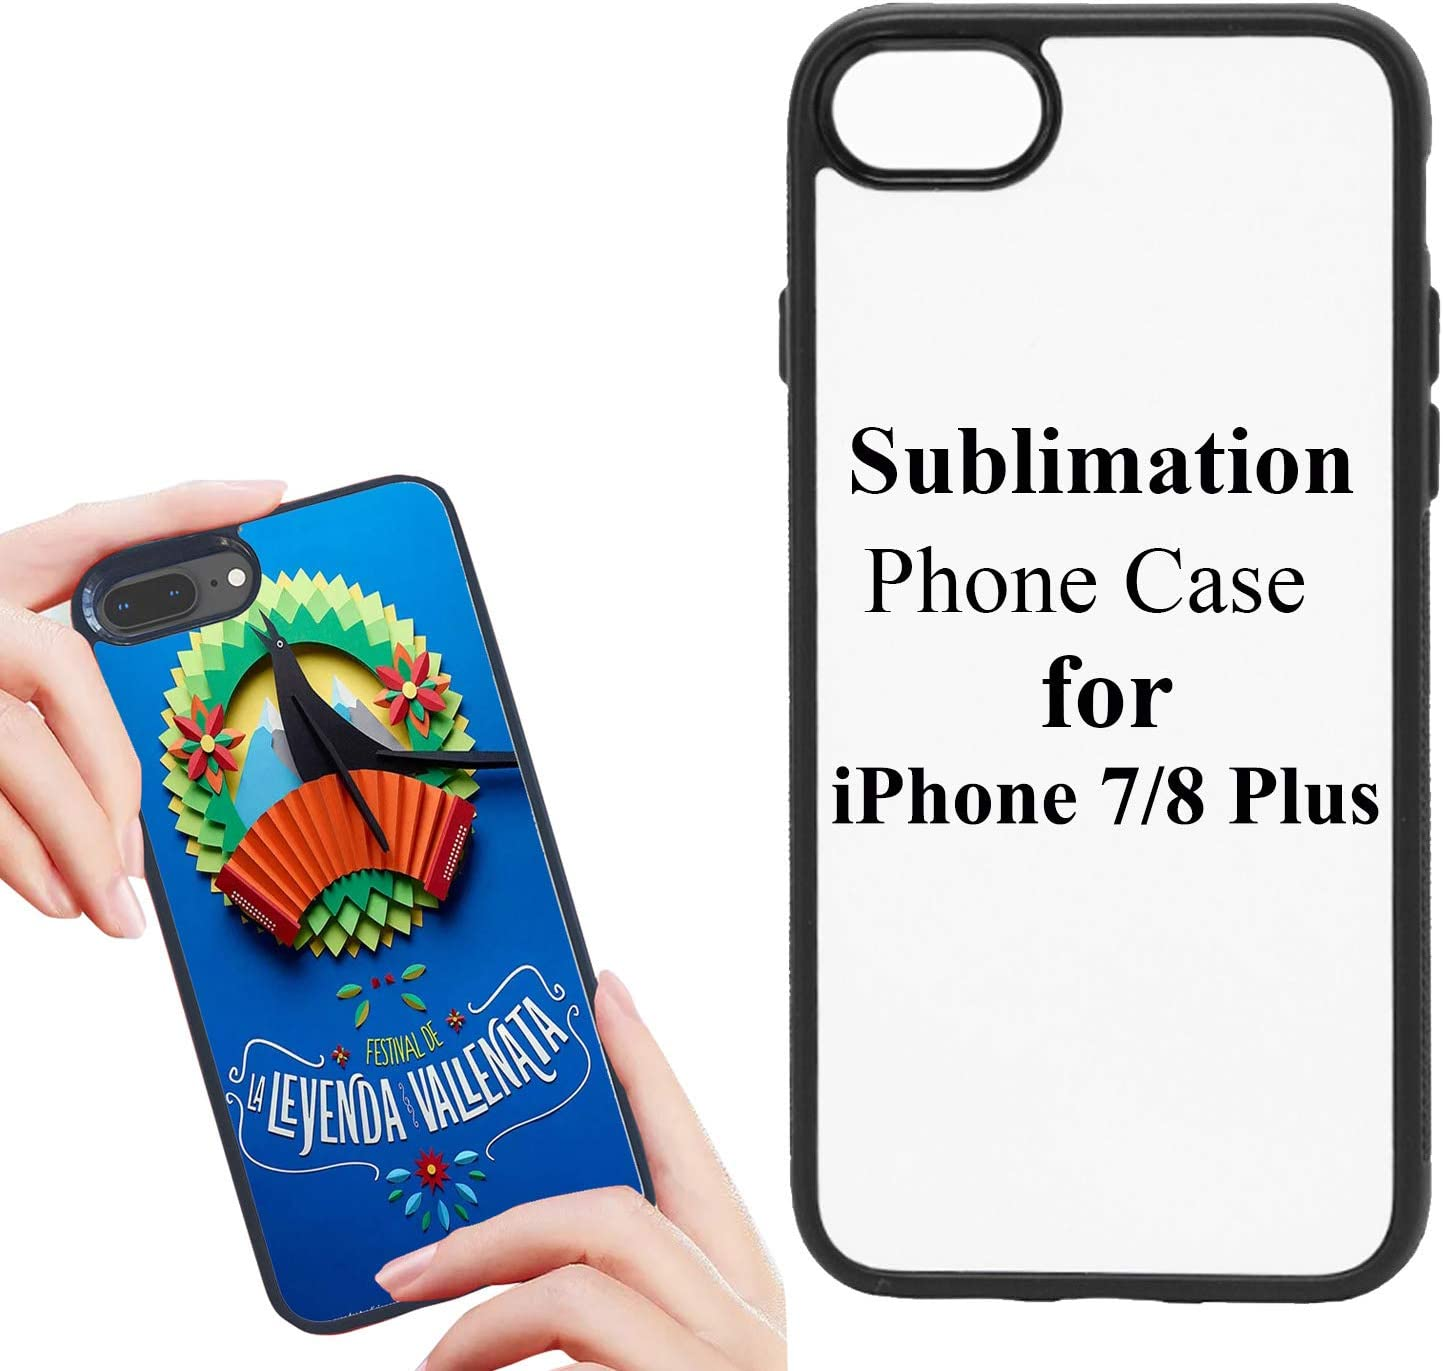 JUSTRY 5 PCS Sublimation Blanks 2D Phone Case Covers Soft Rubber Compatible with iPhone 7/8 Plus, 5.5